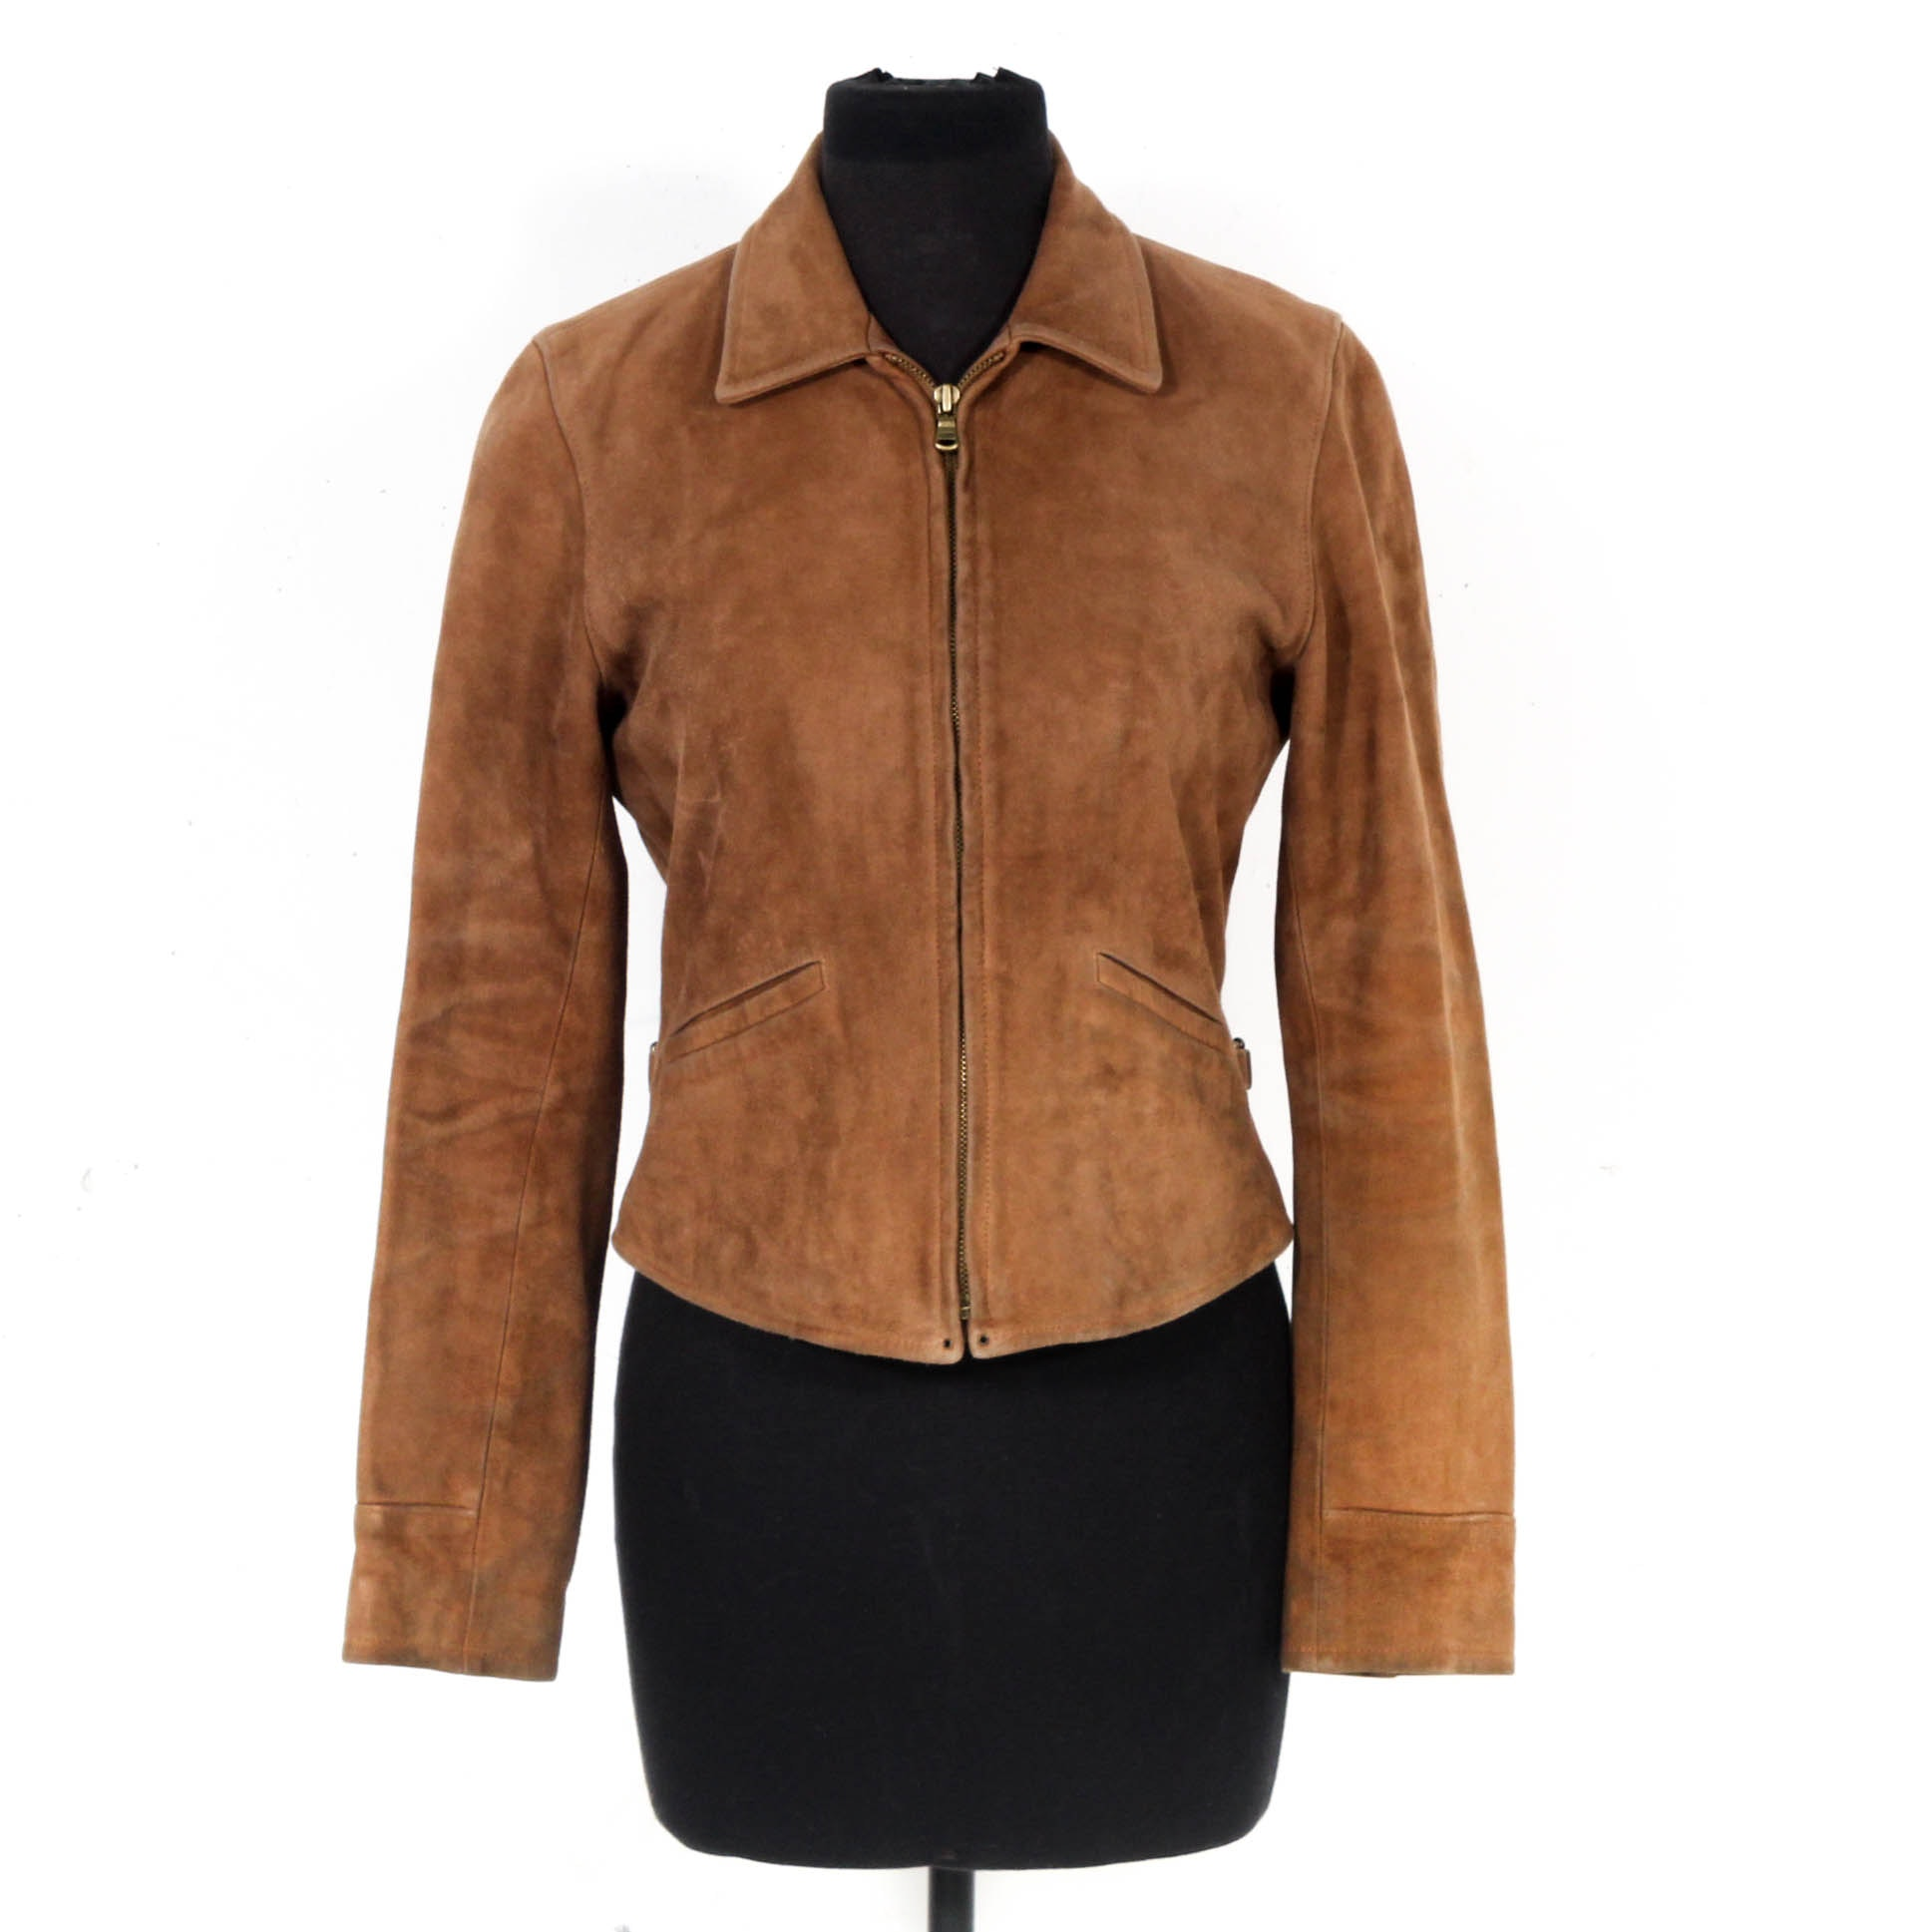 Women's Ralph Lauren Tan Suede Zipper-Front Jacket